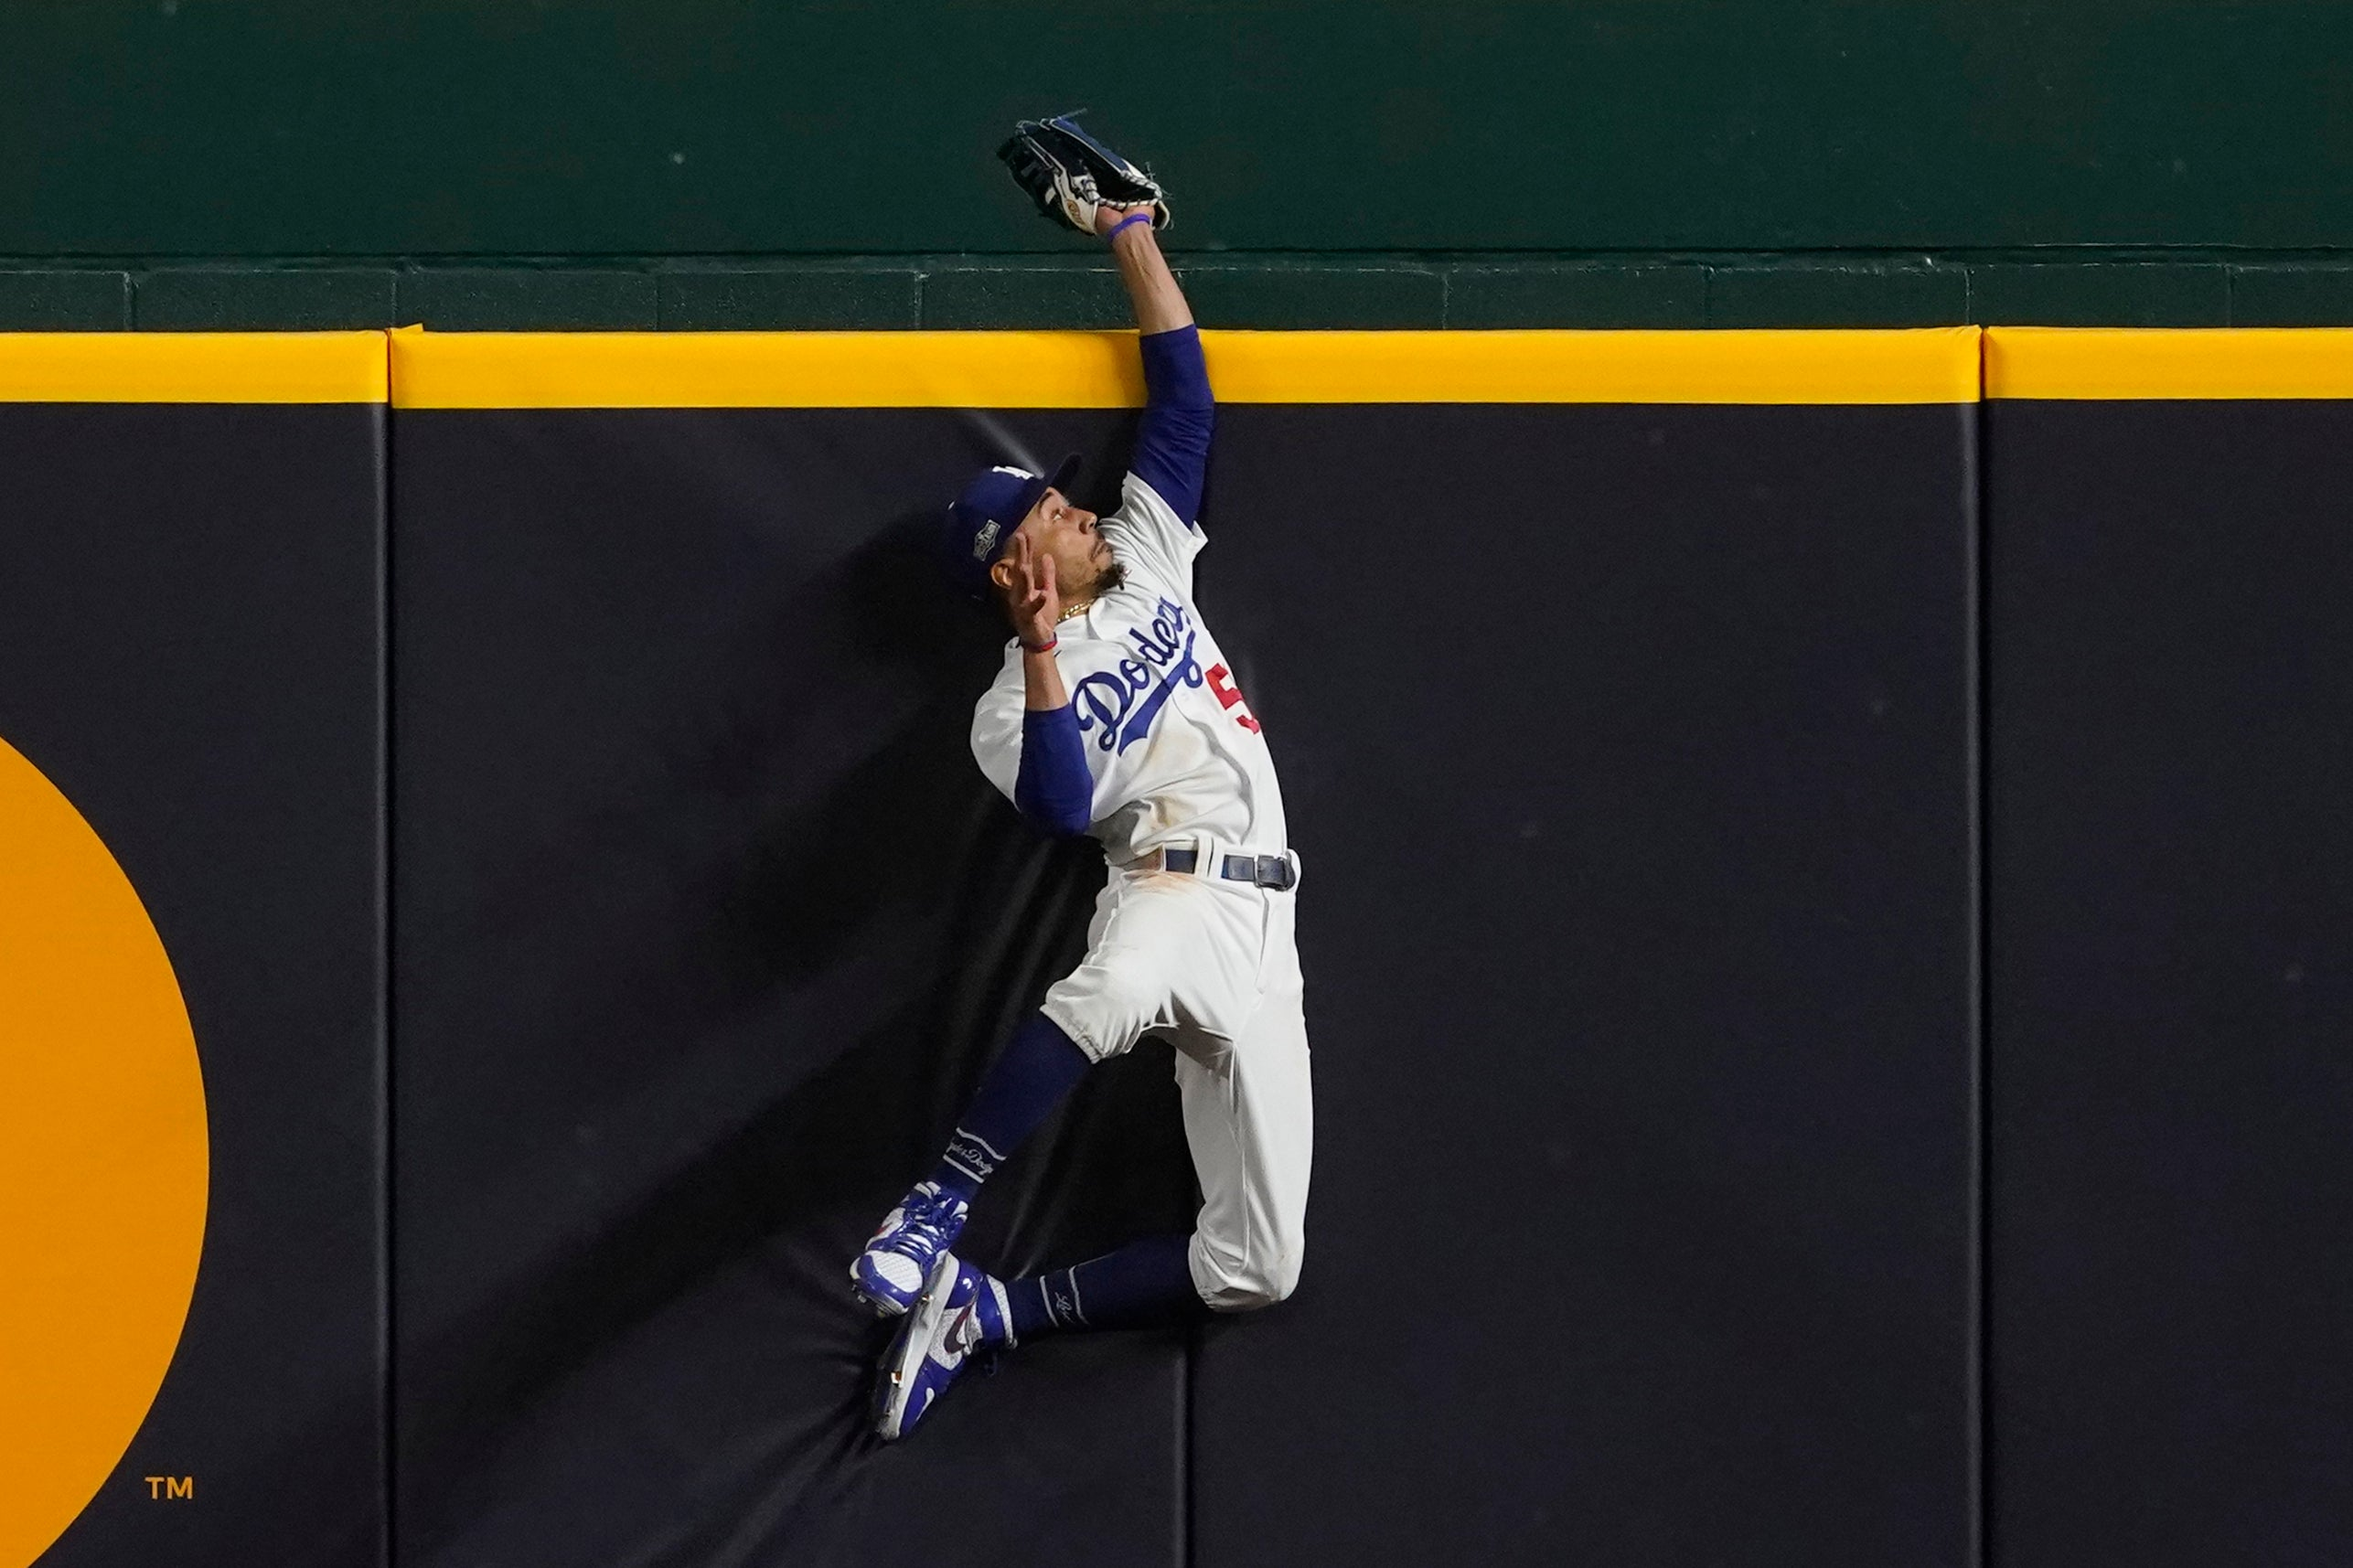 Catch this! Betts saves Dodgers with 3rd web gem in 3 nights